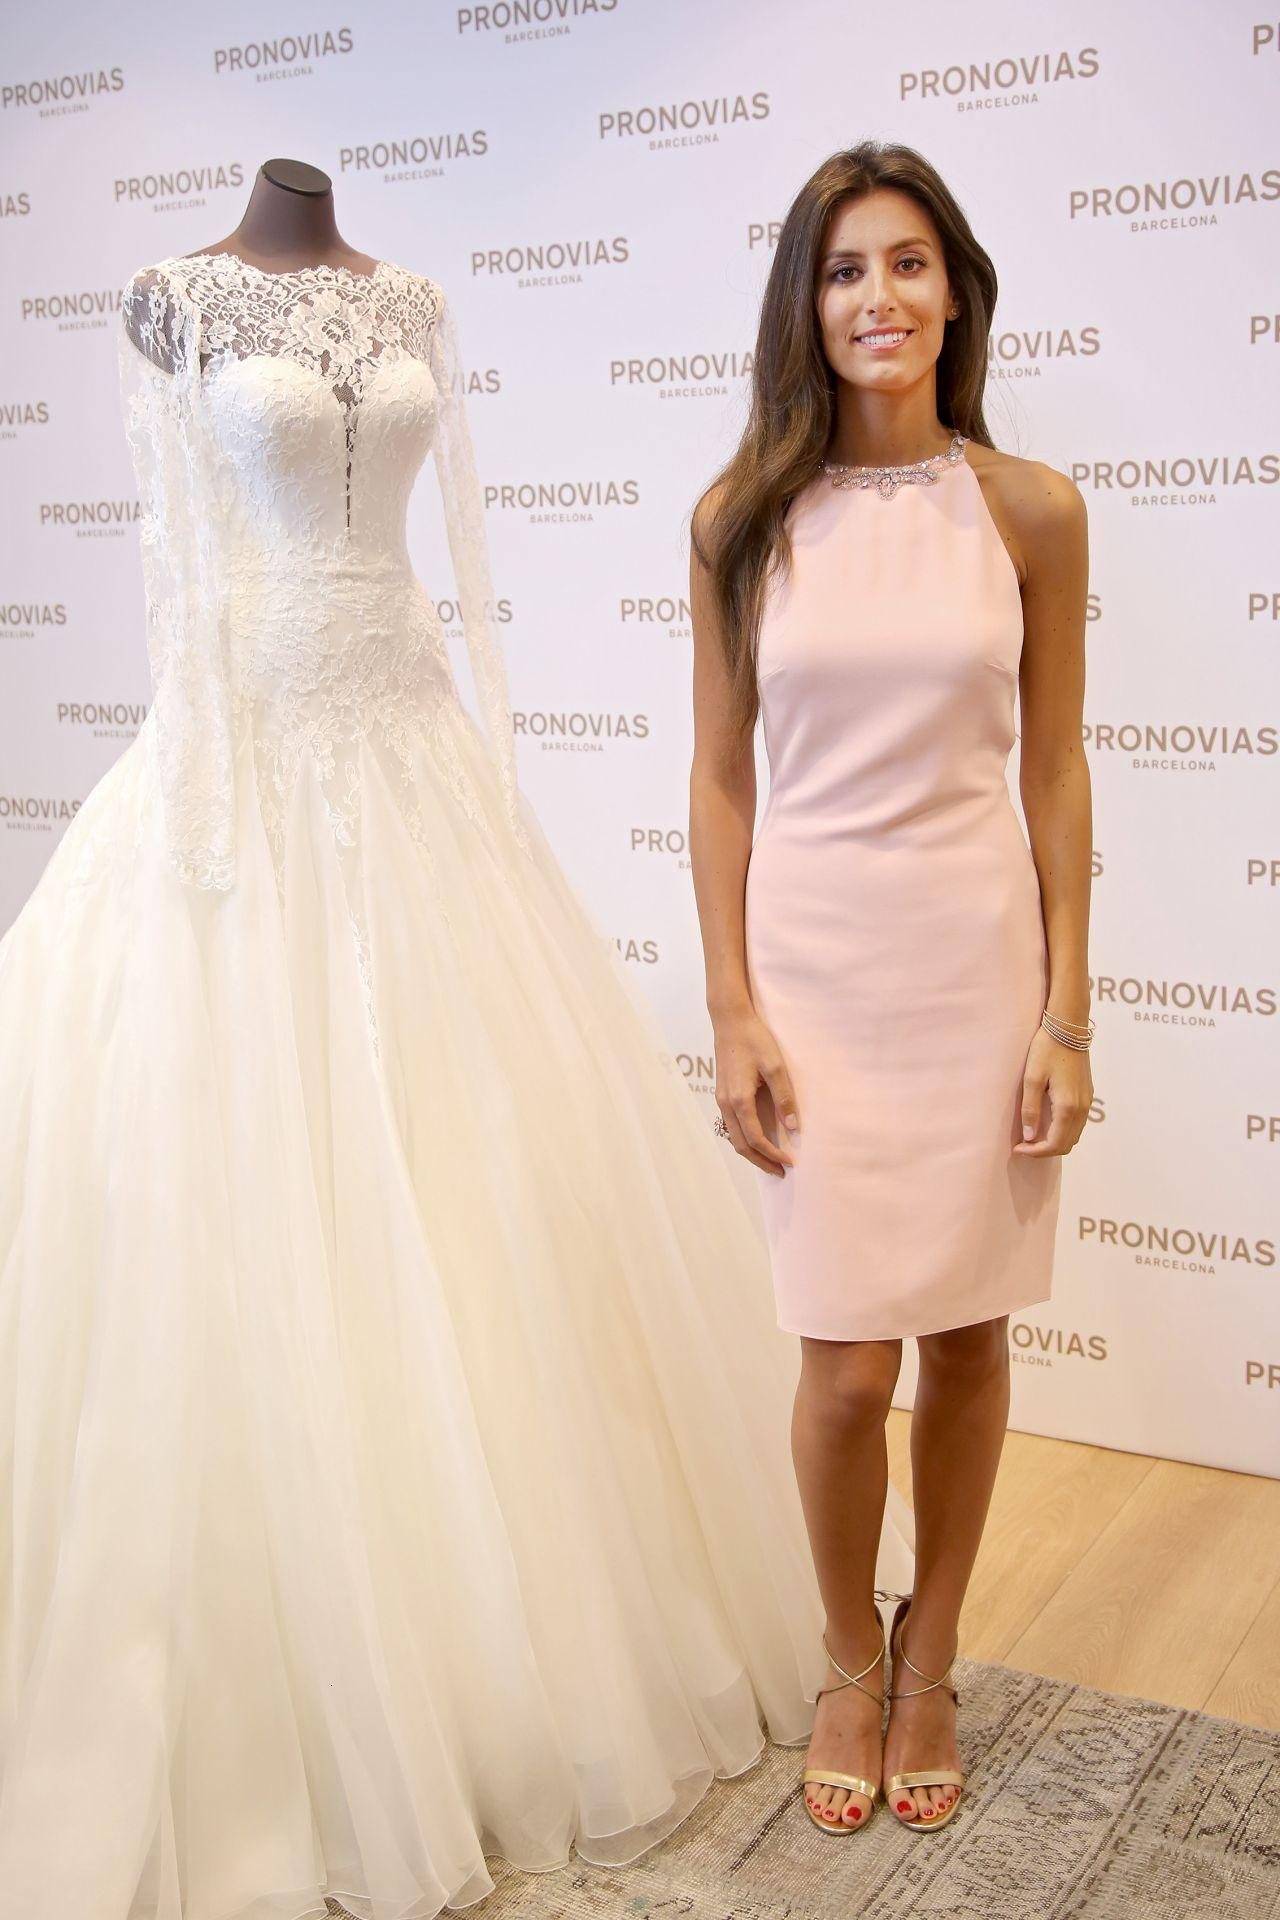 Pronovias_Ana Boyer